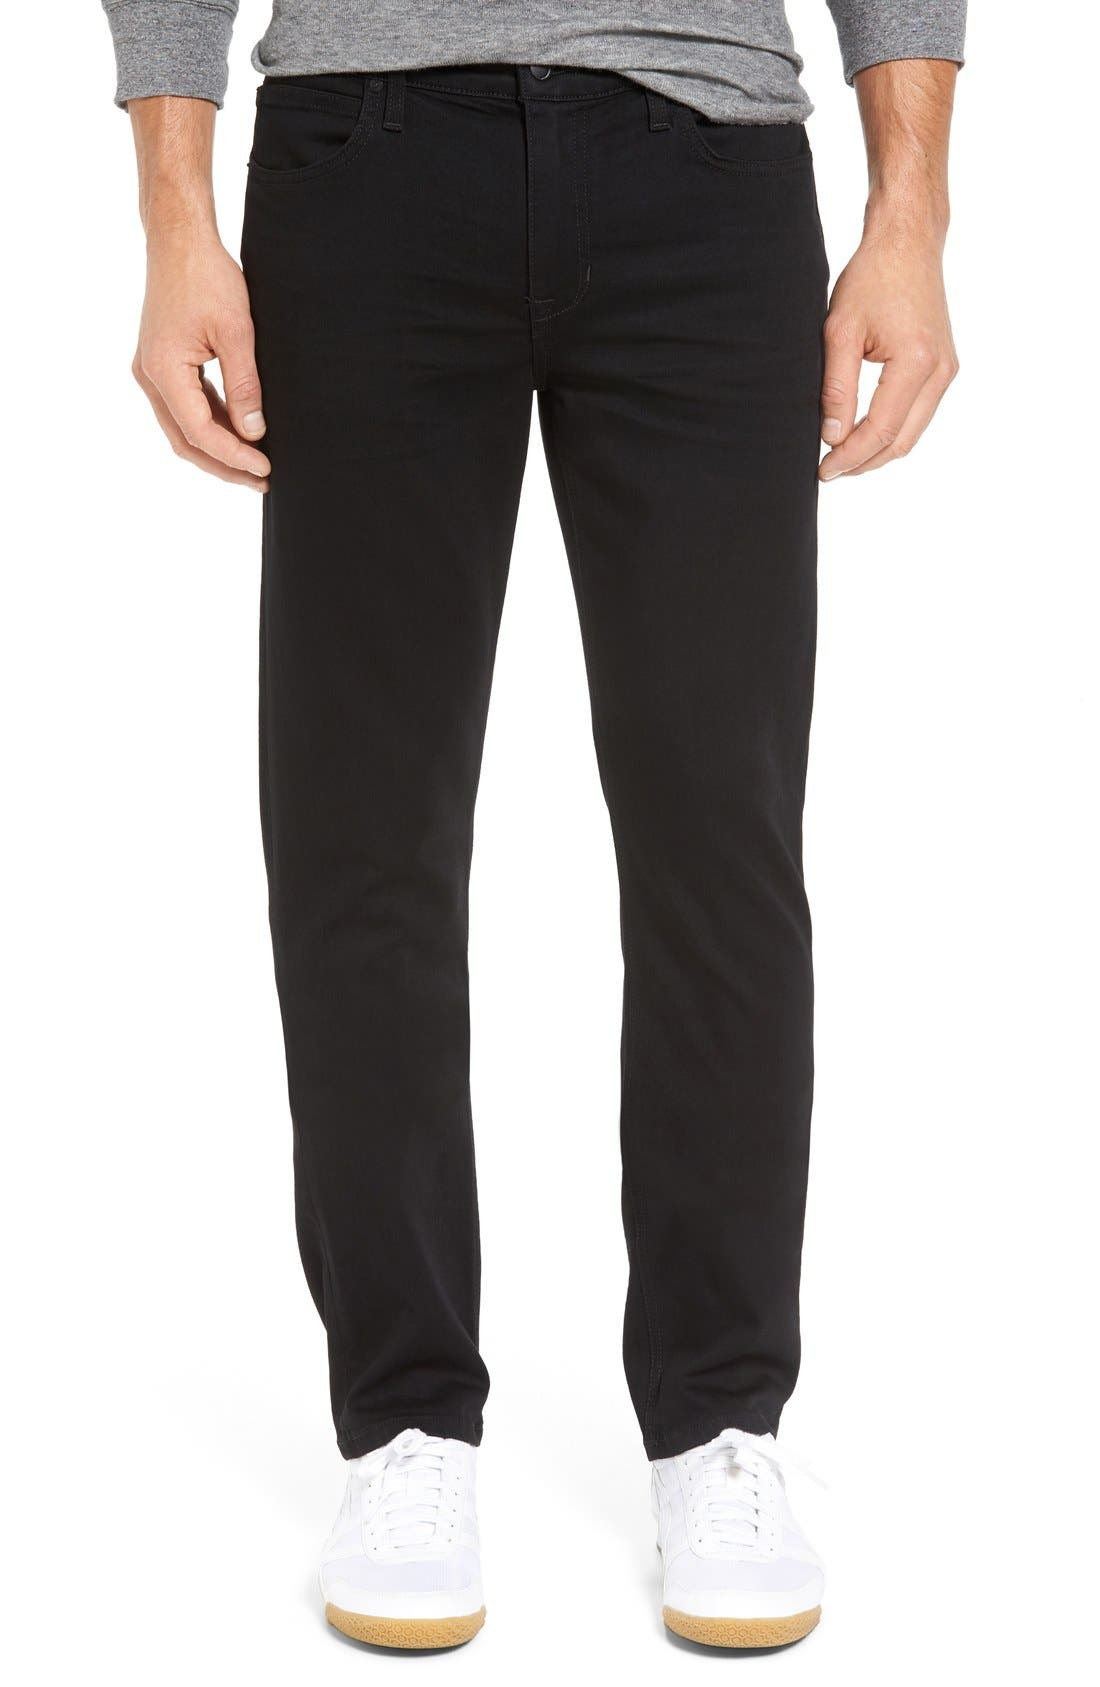 Brixton Kinetic Slim Straight Fit Jeans,                         Main,                         color, Griffith